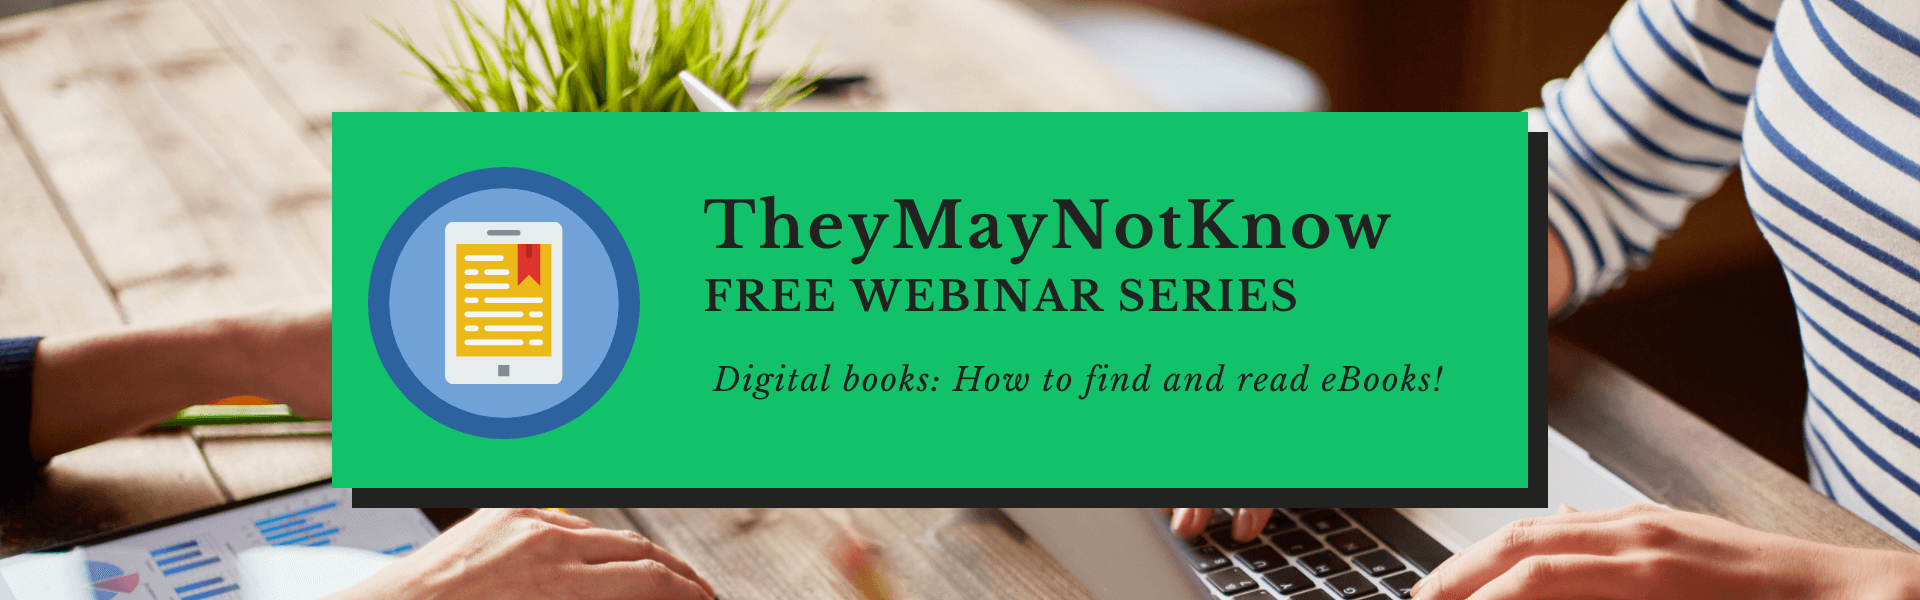 Digital books - How to find and read ebooks